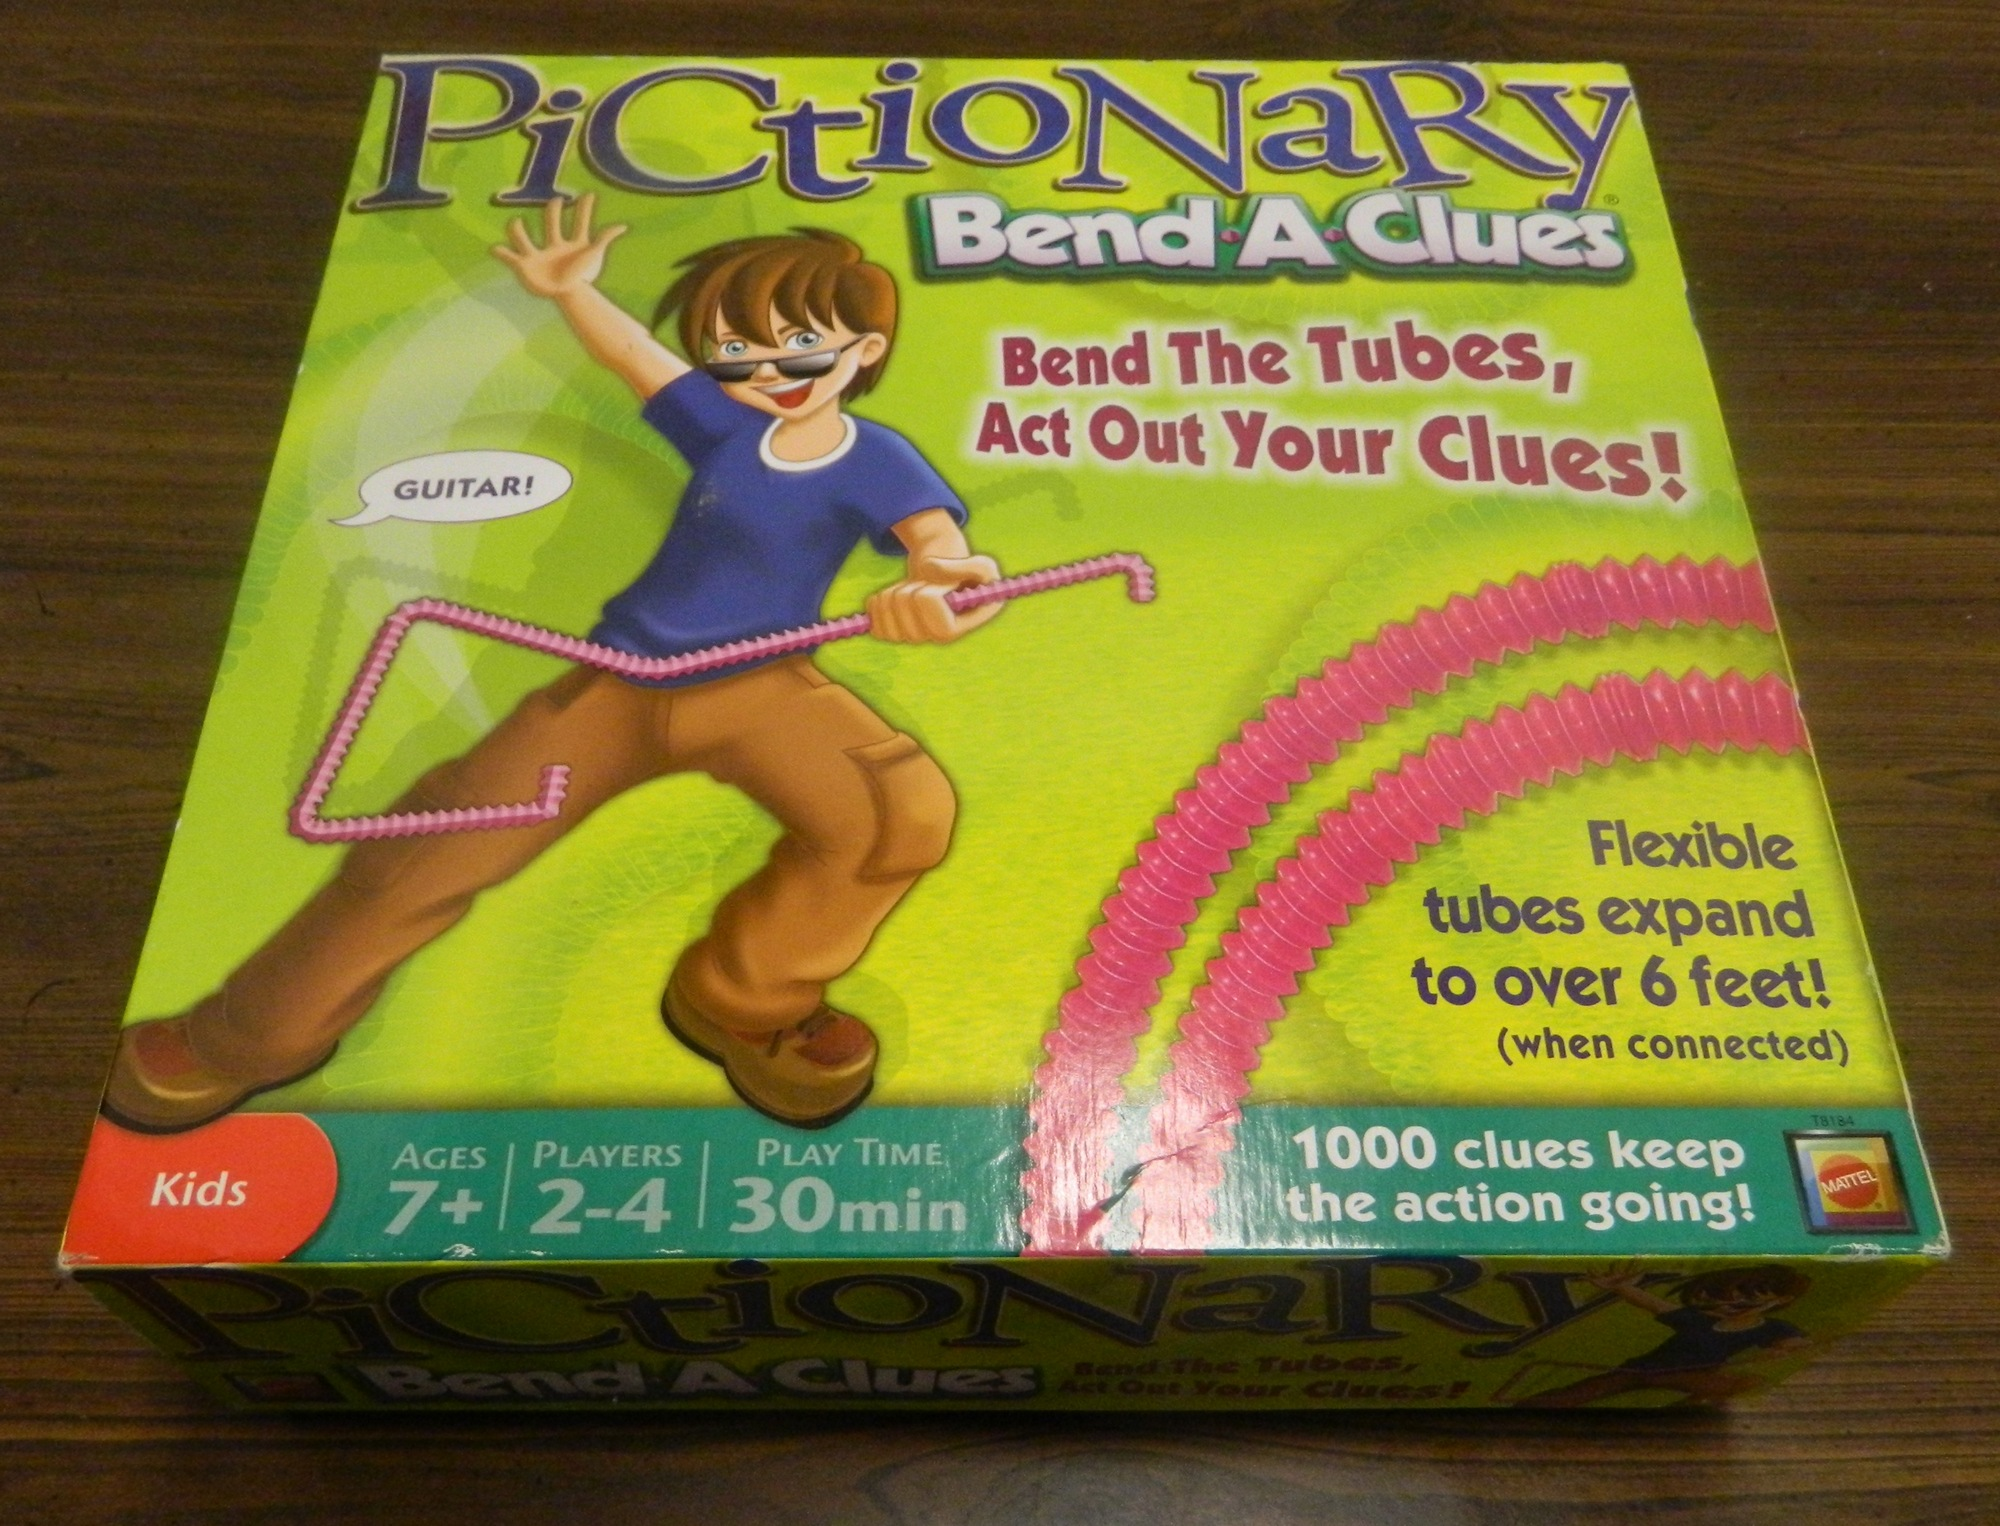 Box for Pictionary Bend-A-Clues